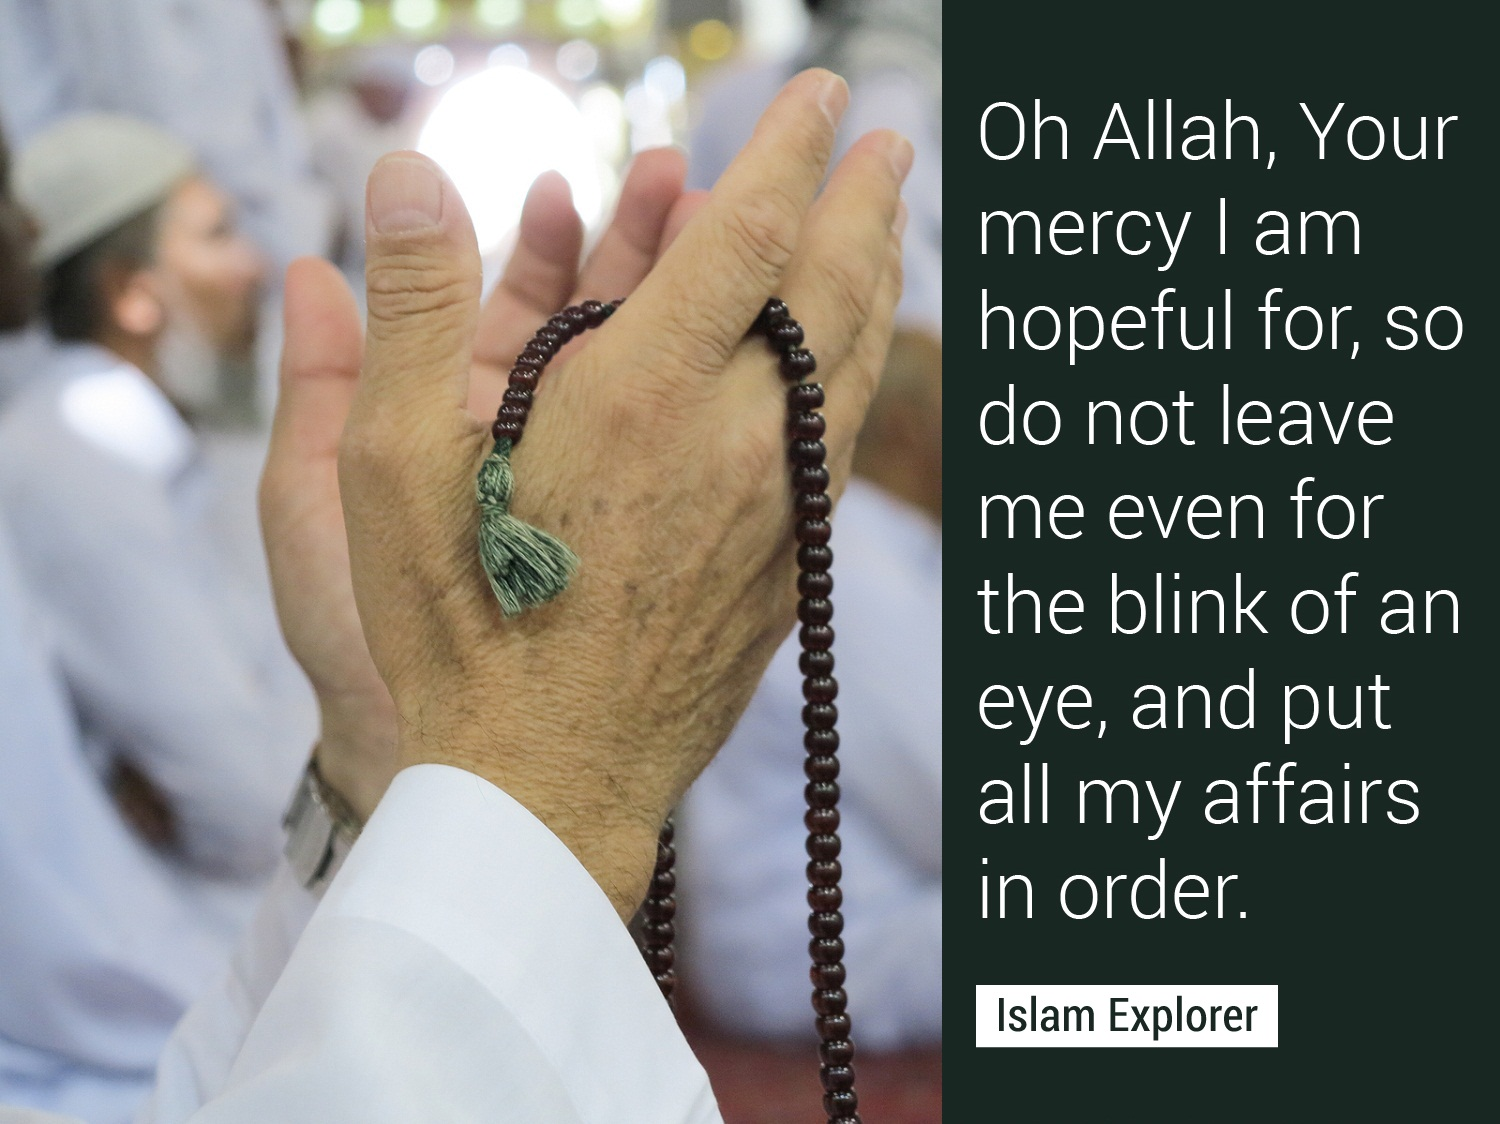 Oh Allah, Your mercy I am hopeful for